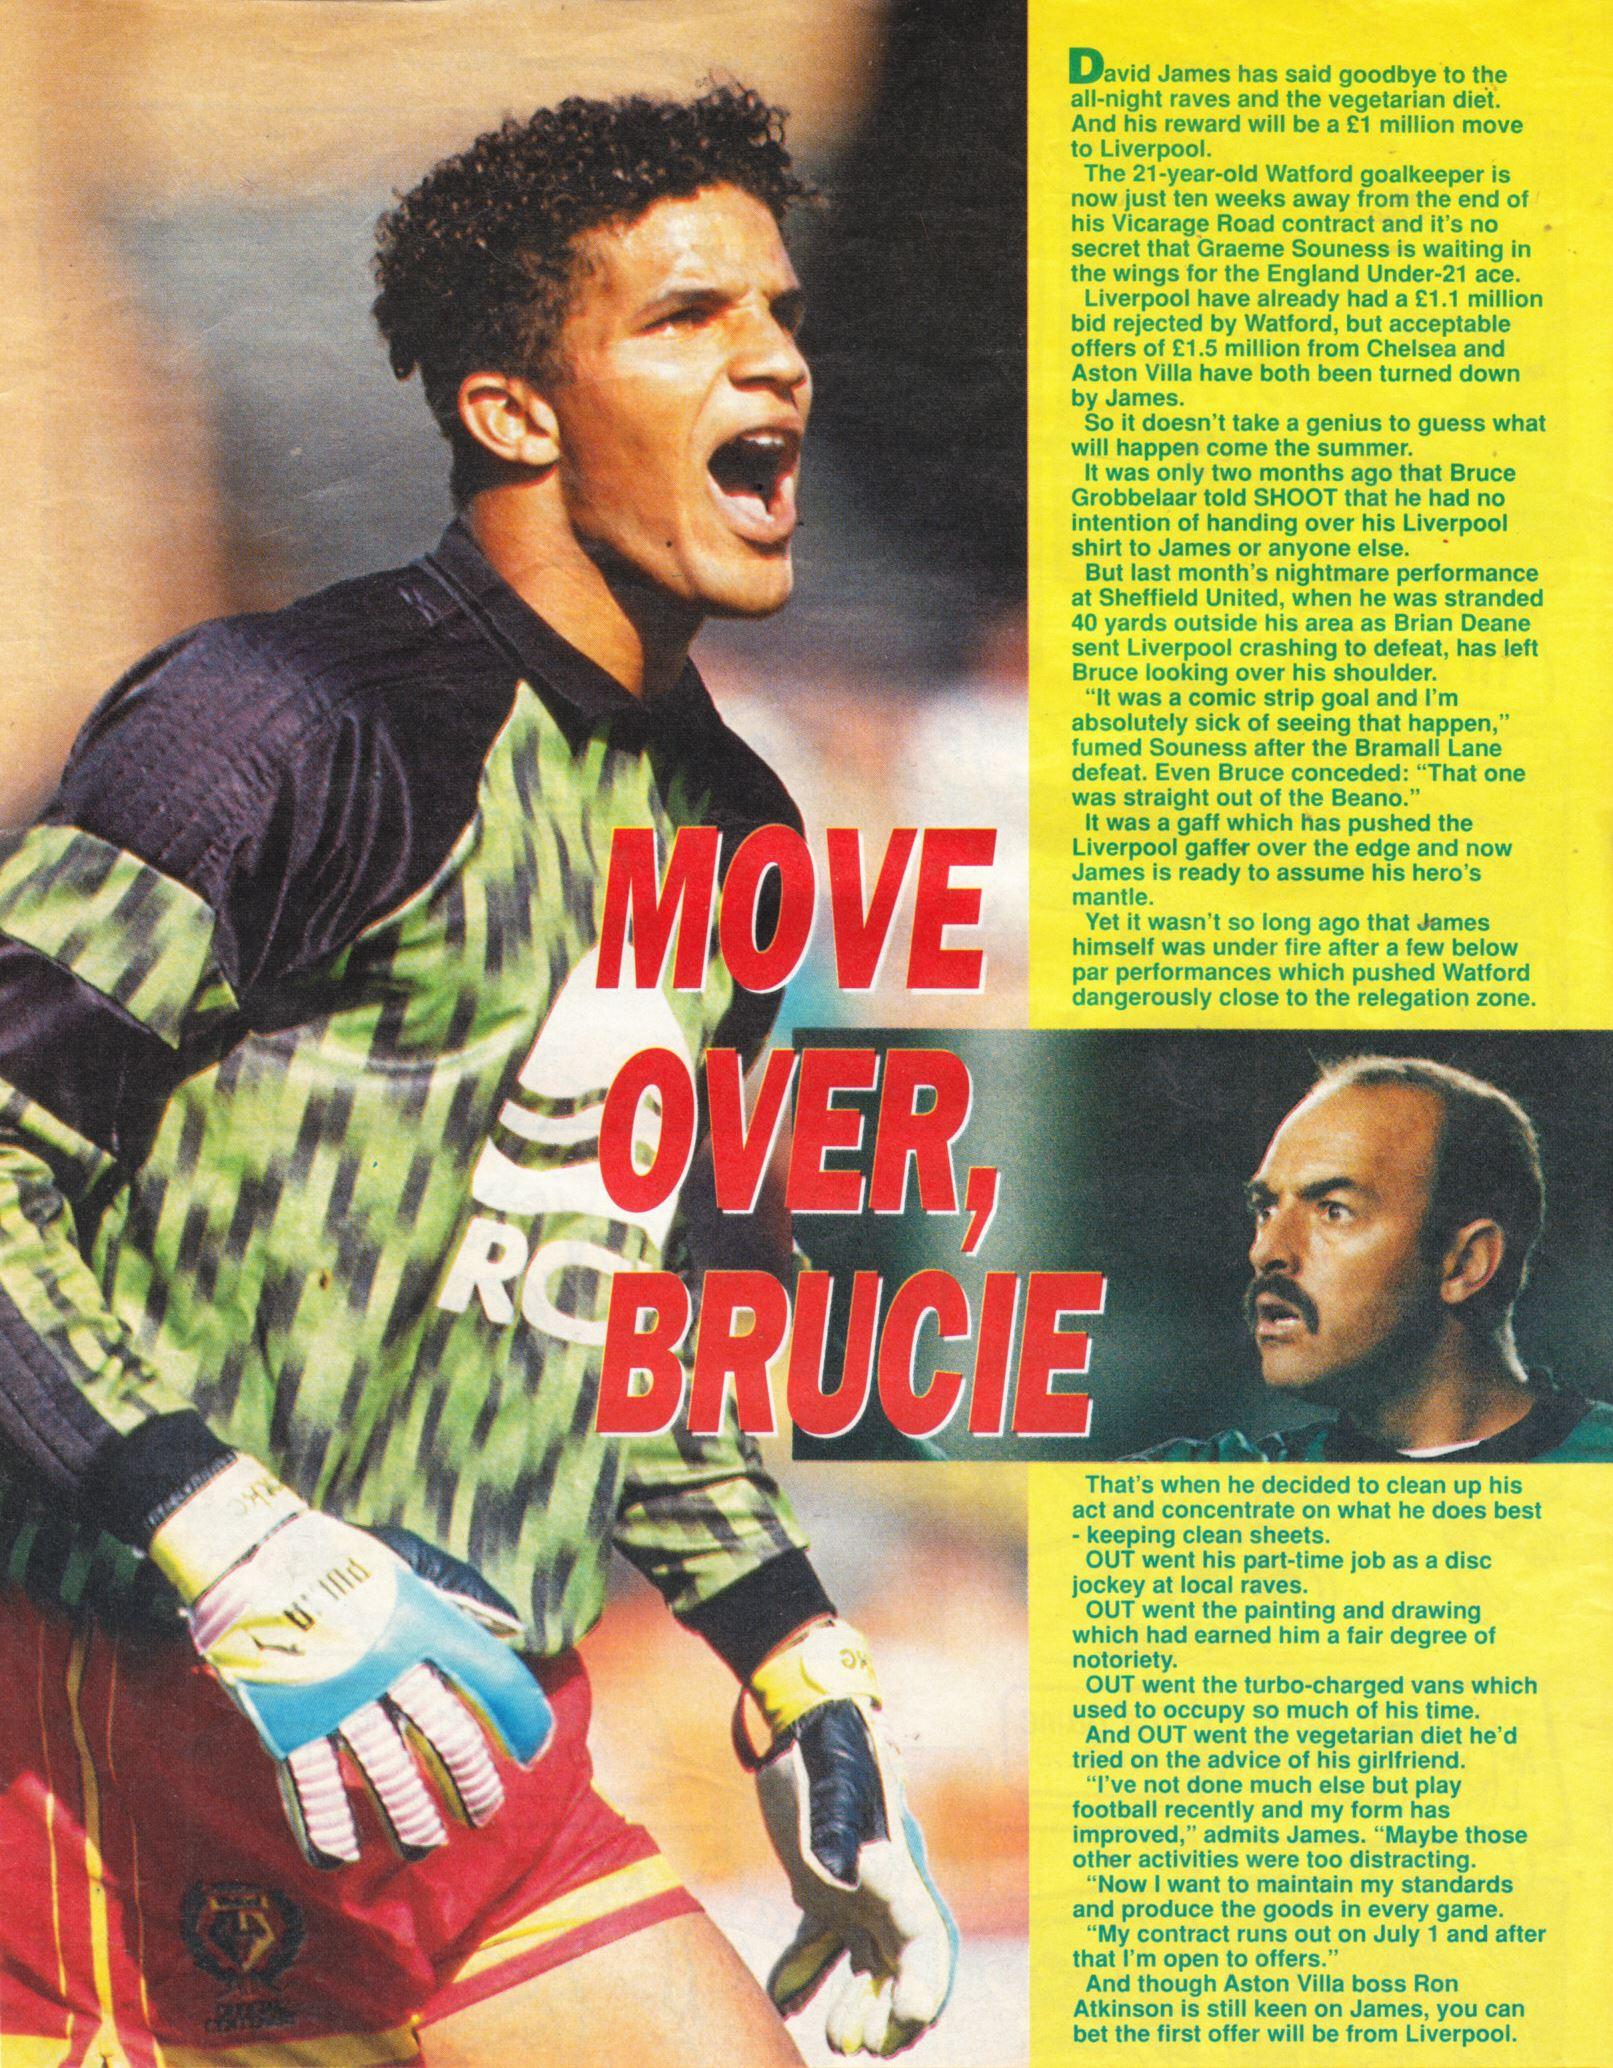 Move over, Brucie! says David James - June 1992